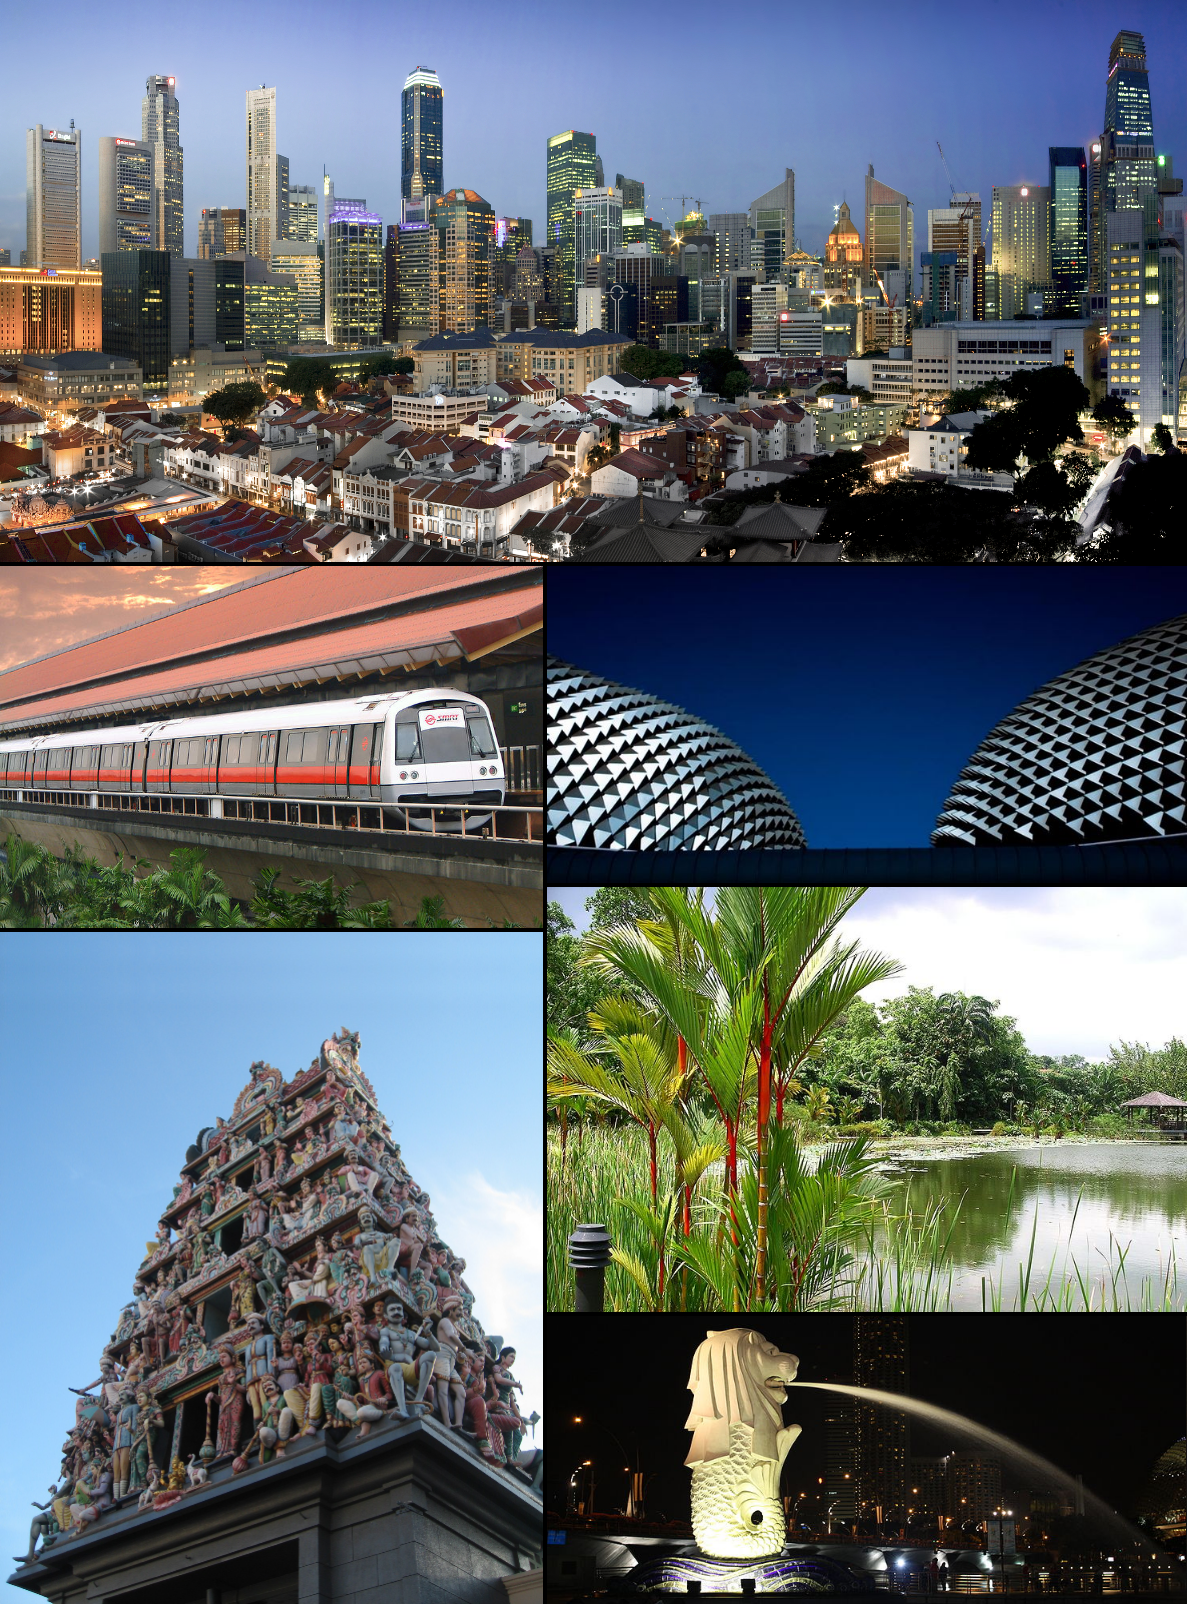 https://upload.wikimedia.org/wikipedia/commons/3/39/Singapore_montage.png